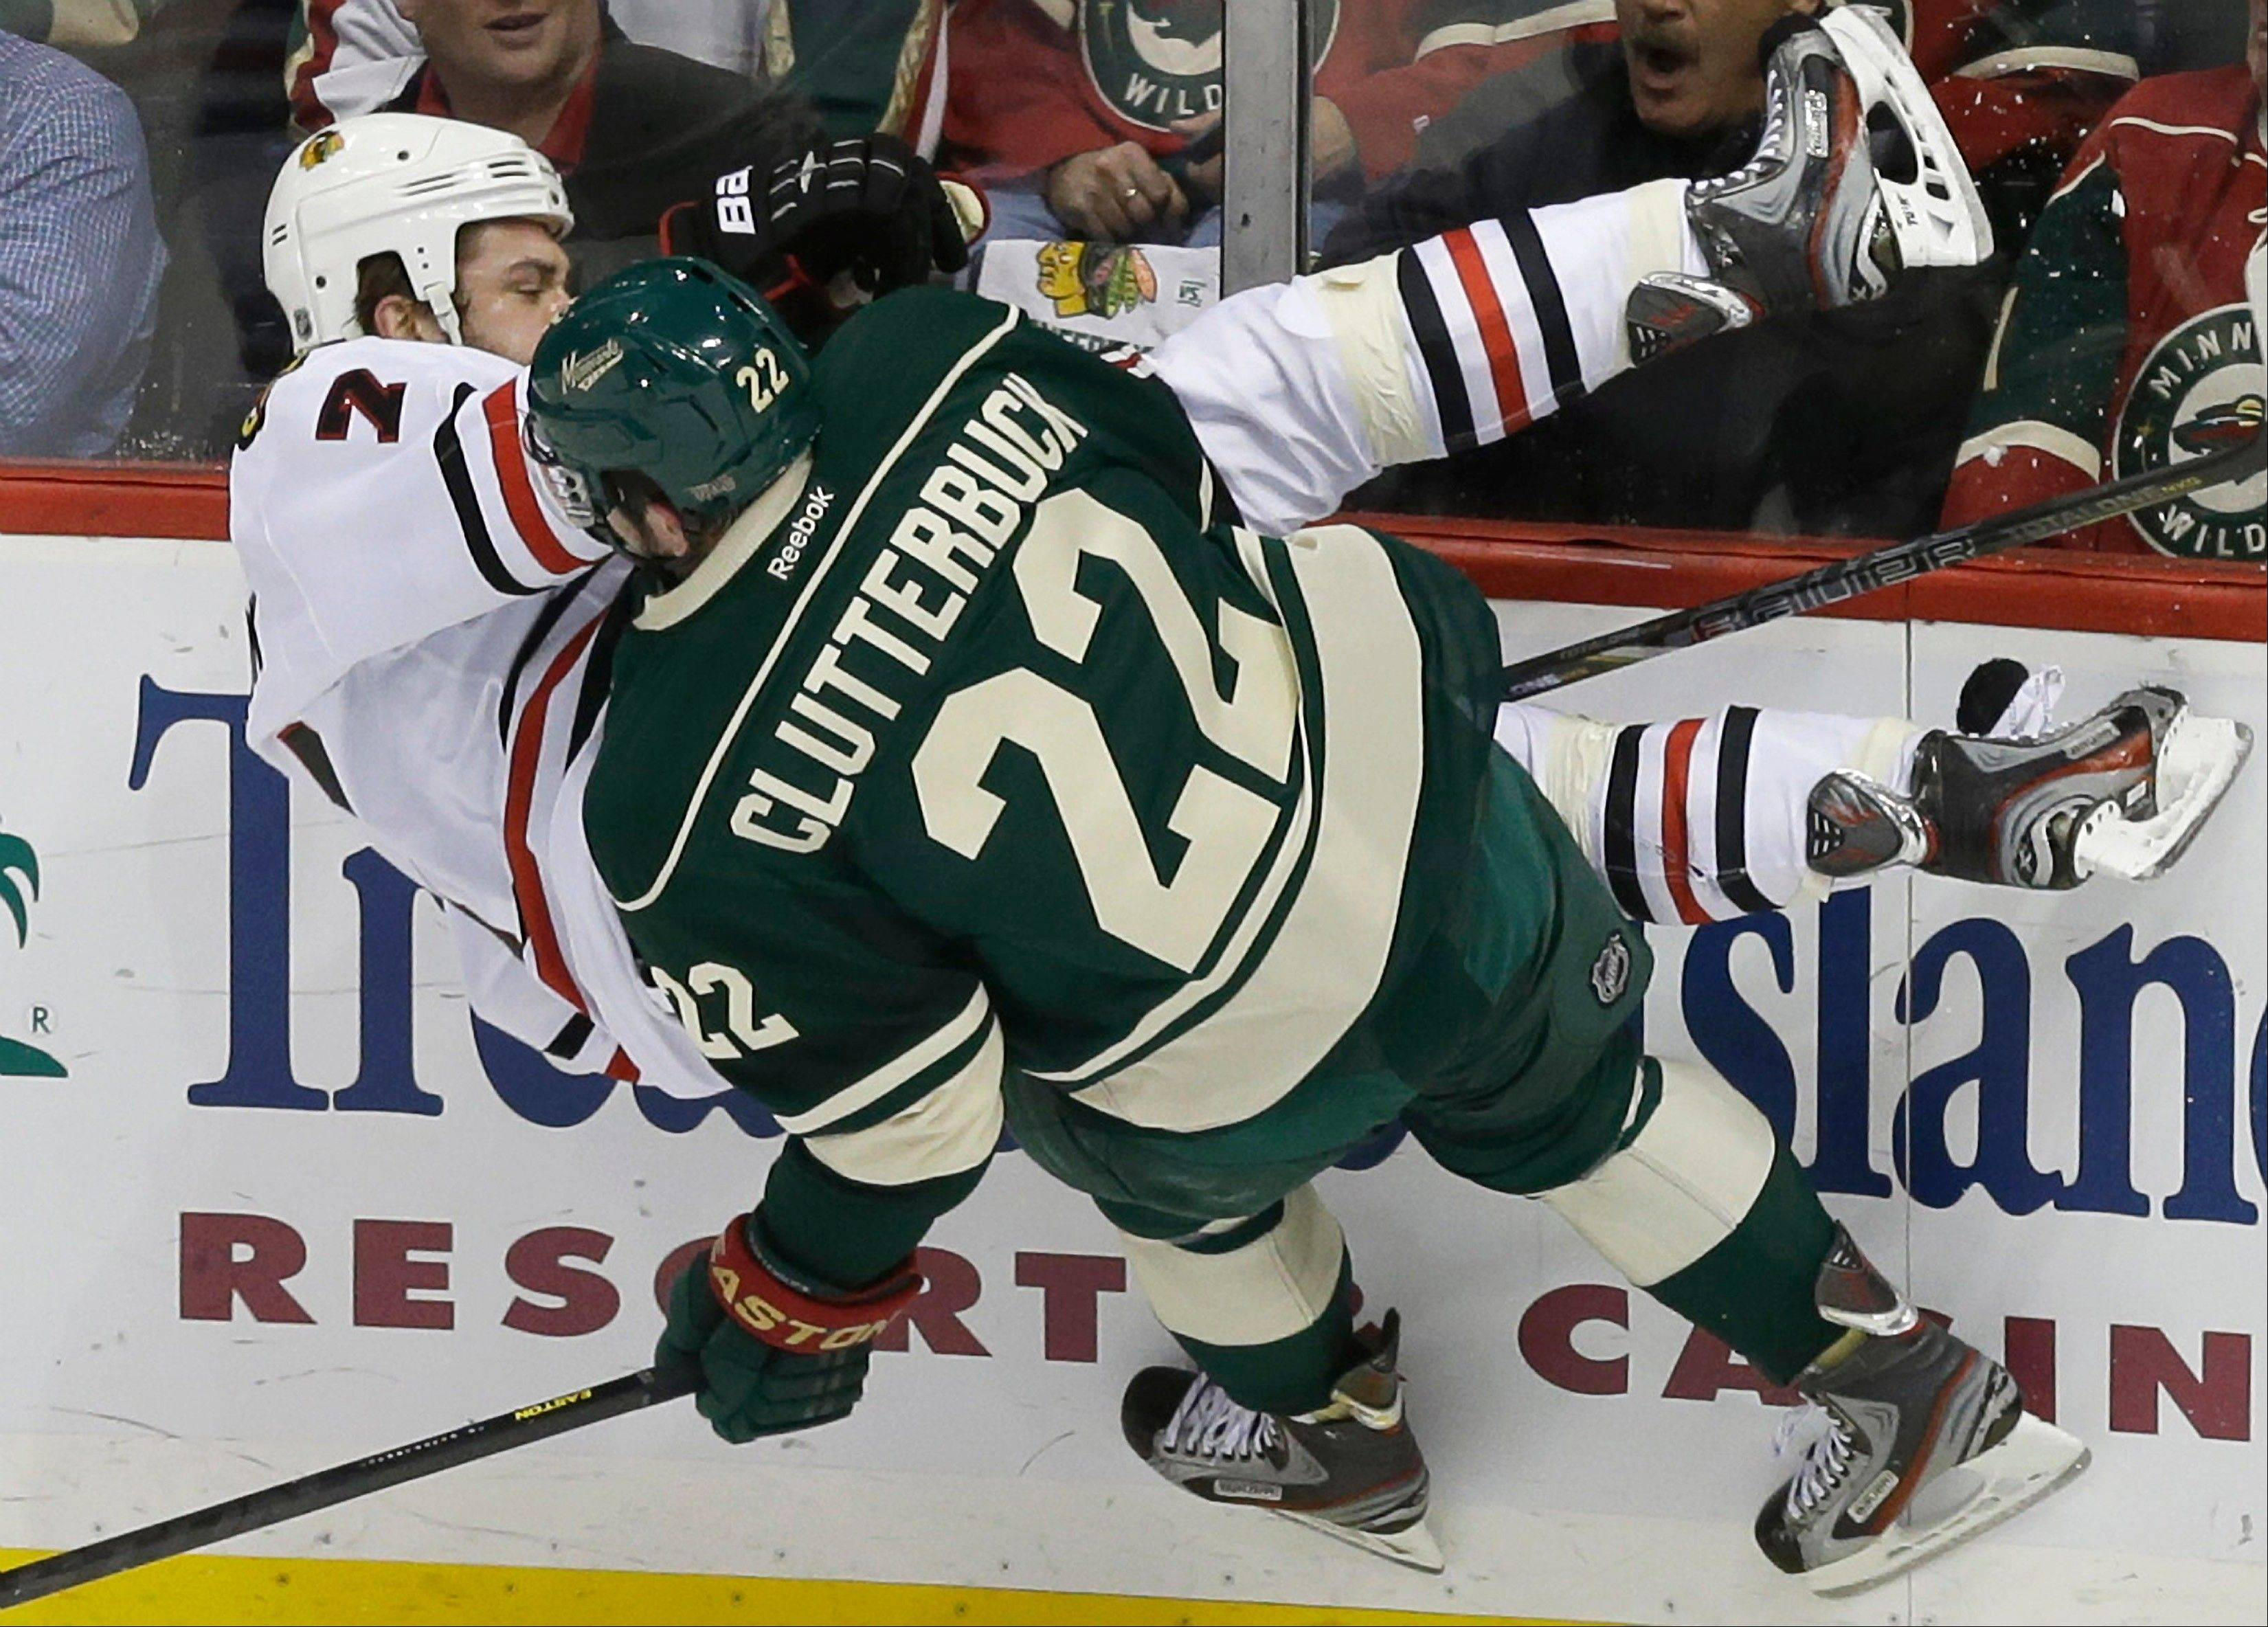 Chicago Blackhawks' Brent Seabrook gets checked into the wall by Minnesota Wild's Cal Clutterbuck in the first period of Game 4 of an NHL hockey Stanley Cup playoff series, Tuesday, May 7, 2013 in St. Paul, Minn.